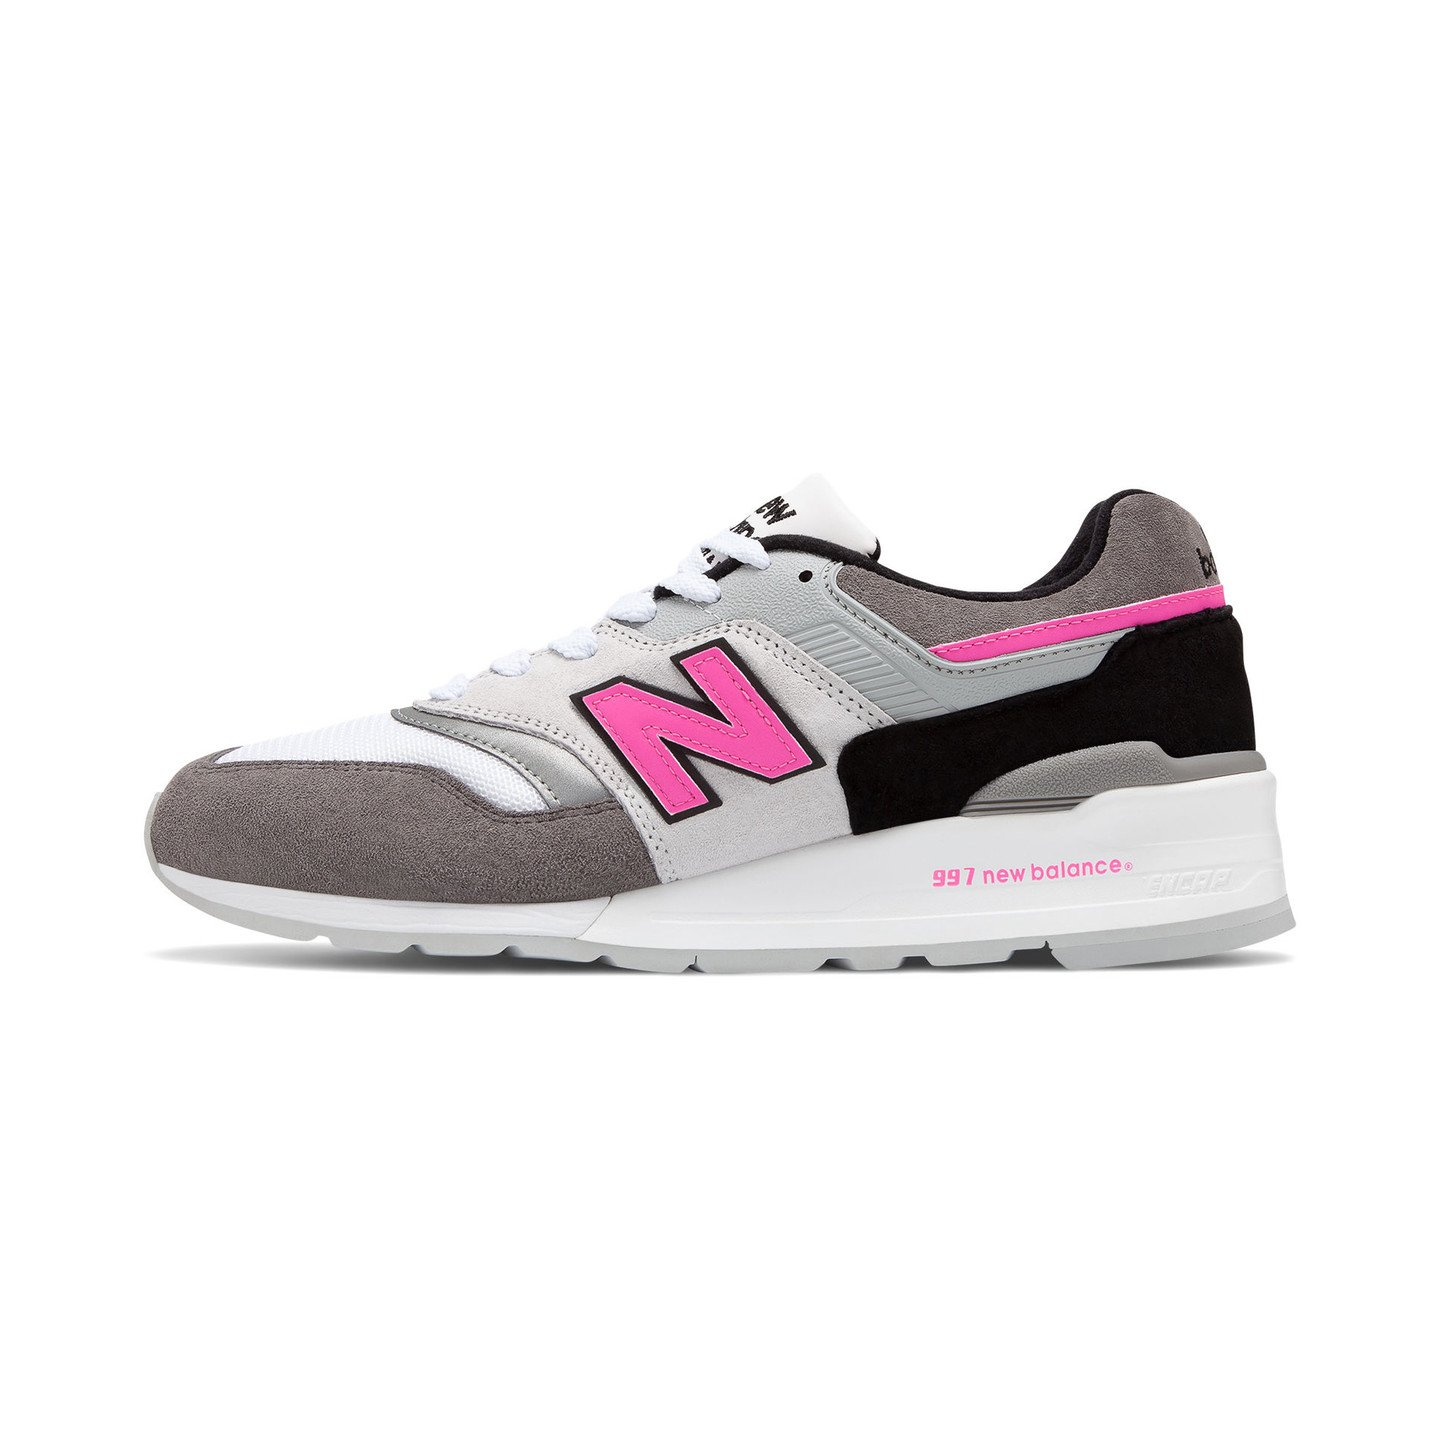 New Balance M997 - Made in USA Grey / Pink / White / Black M997LBK